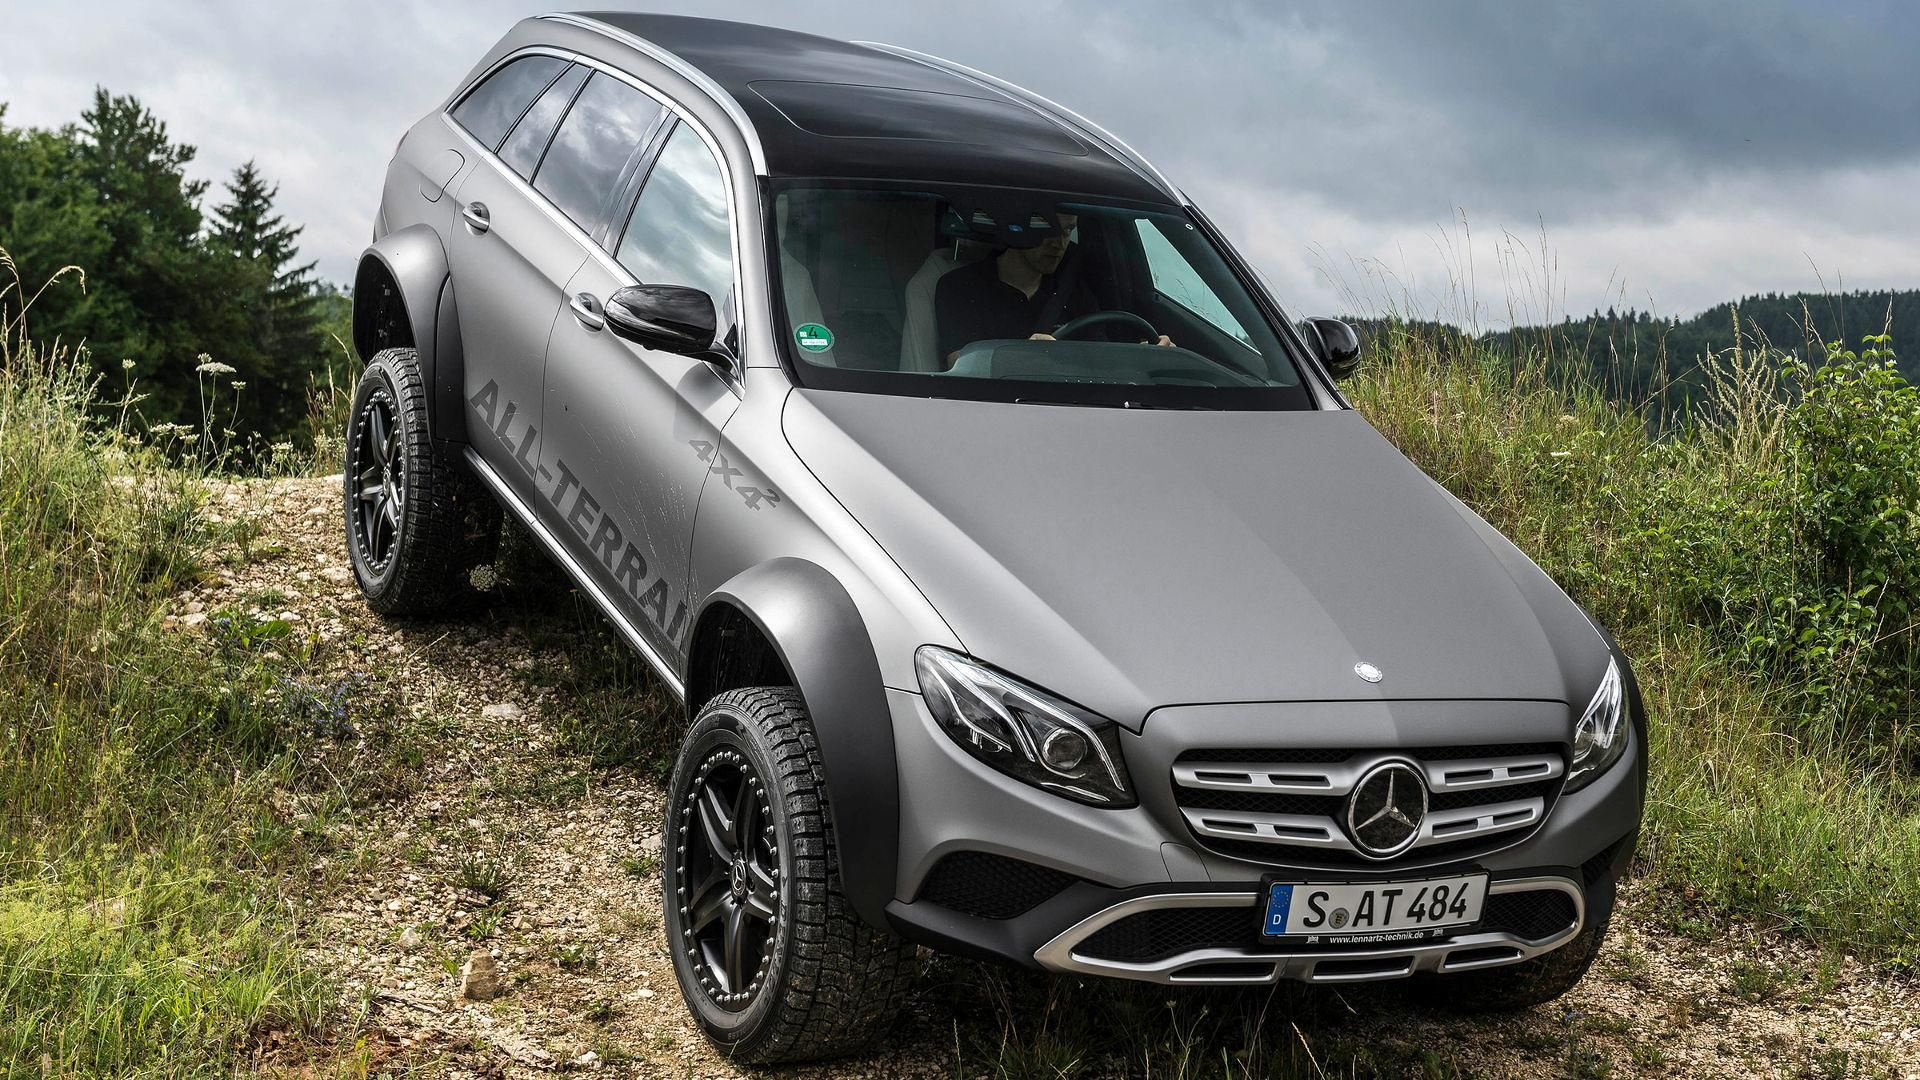 10 images with the hardcore Mercedes E-Class All-Terrain a wagon with  portal axles and more ground clearance than even the rugged G-Class